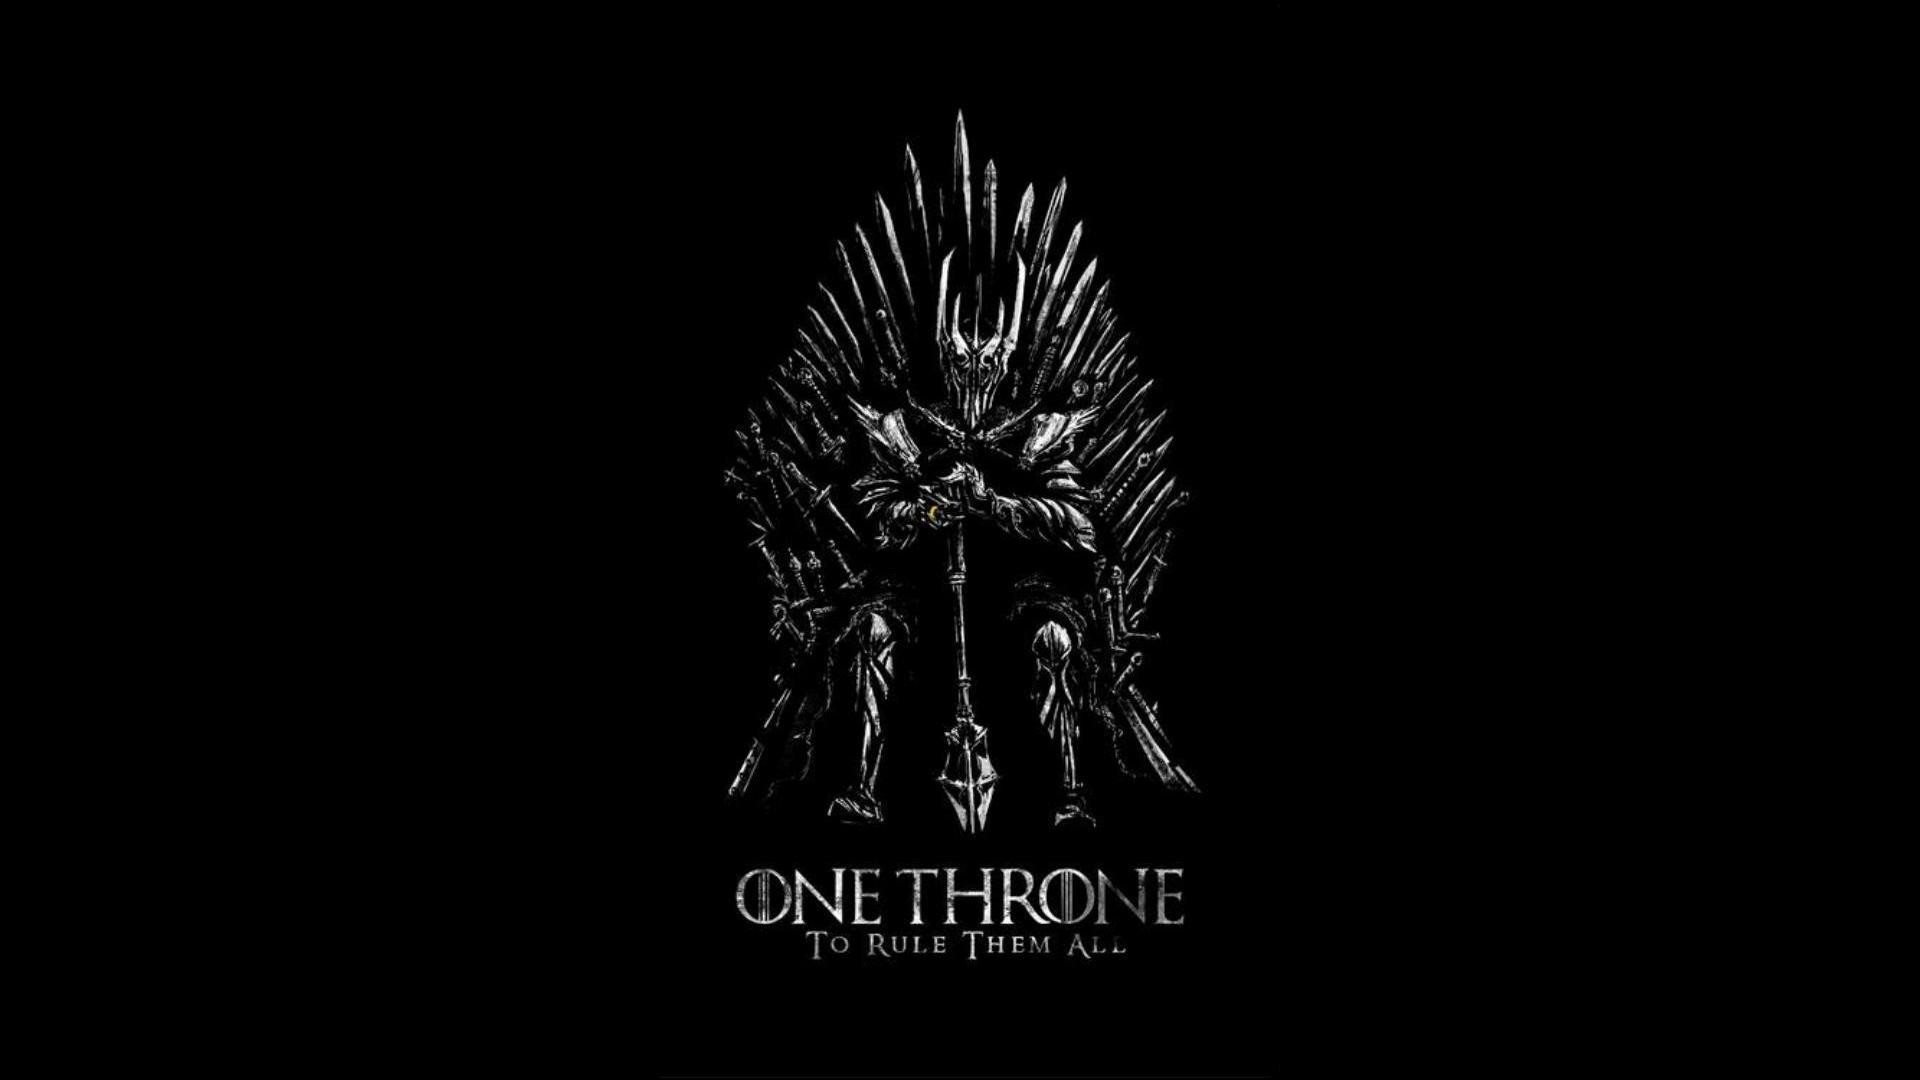 game of game of thrones wallpaper free downloadwallpapers game of 1920x1080